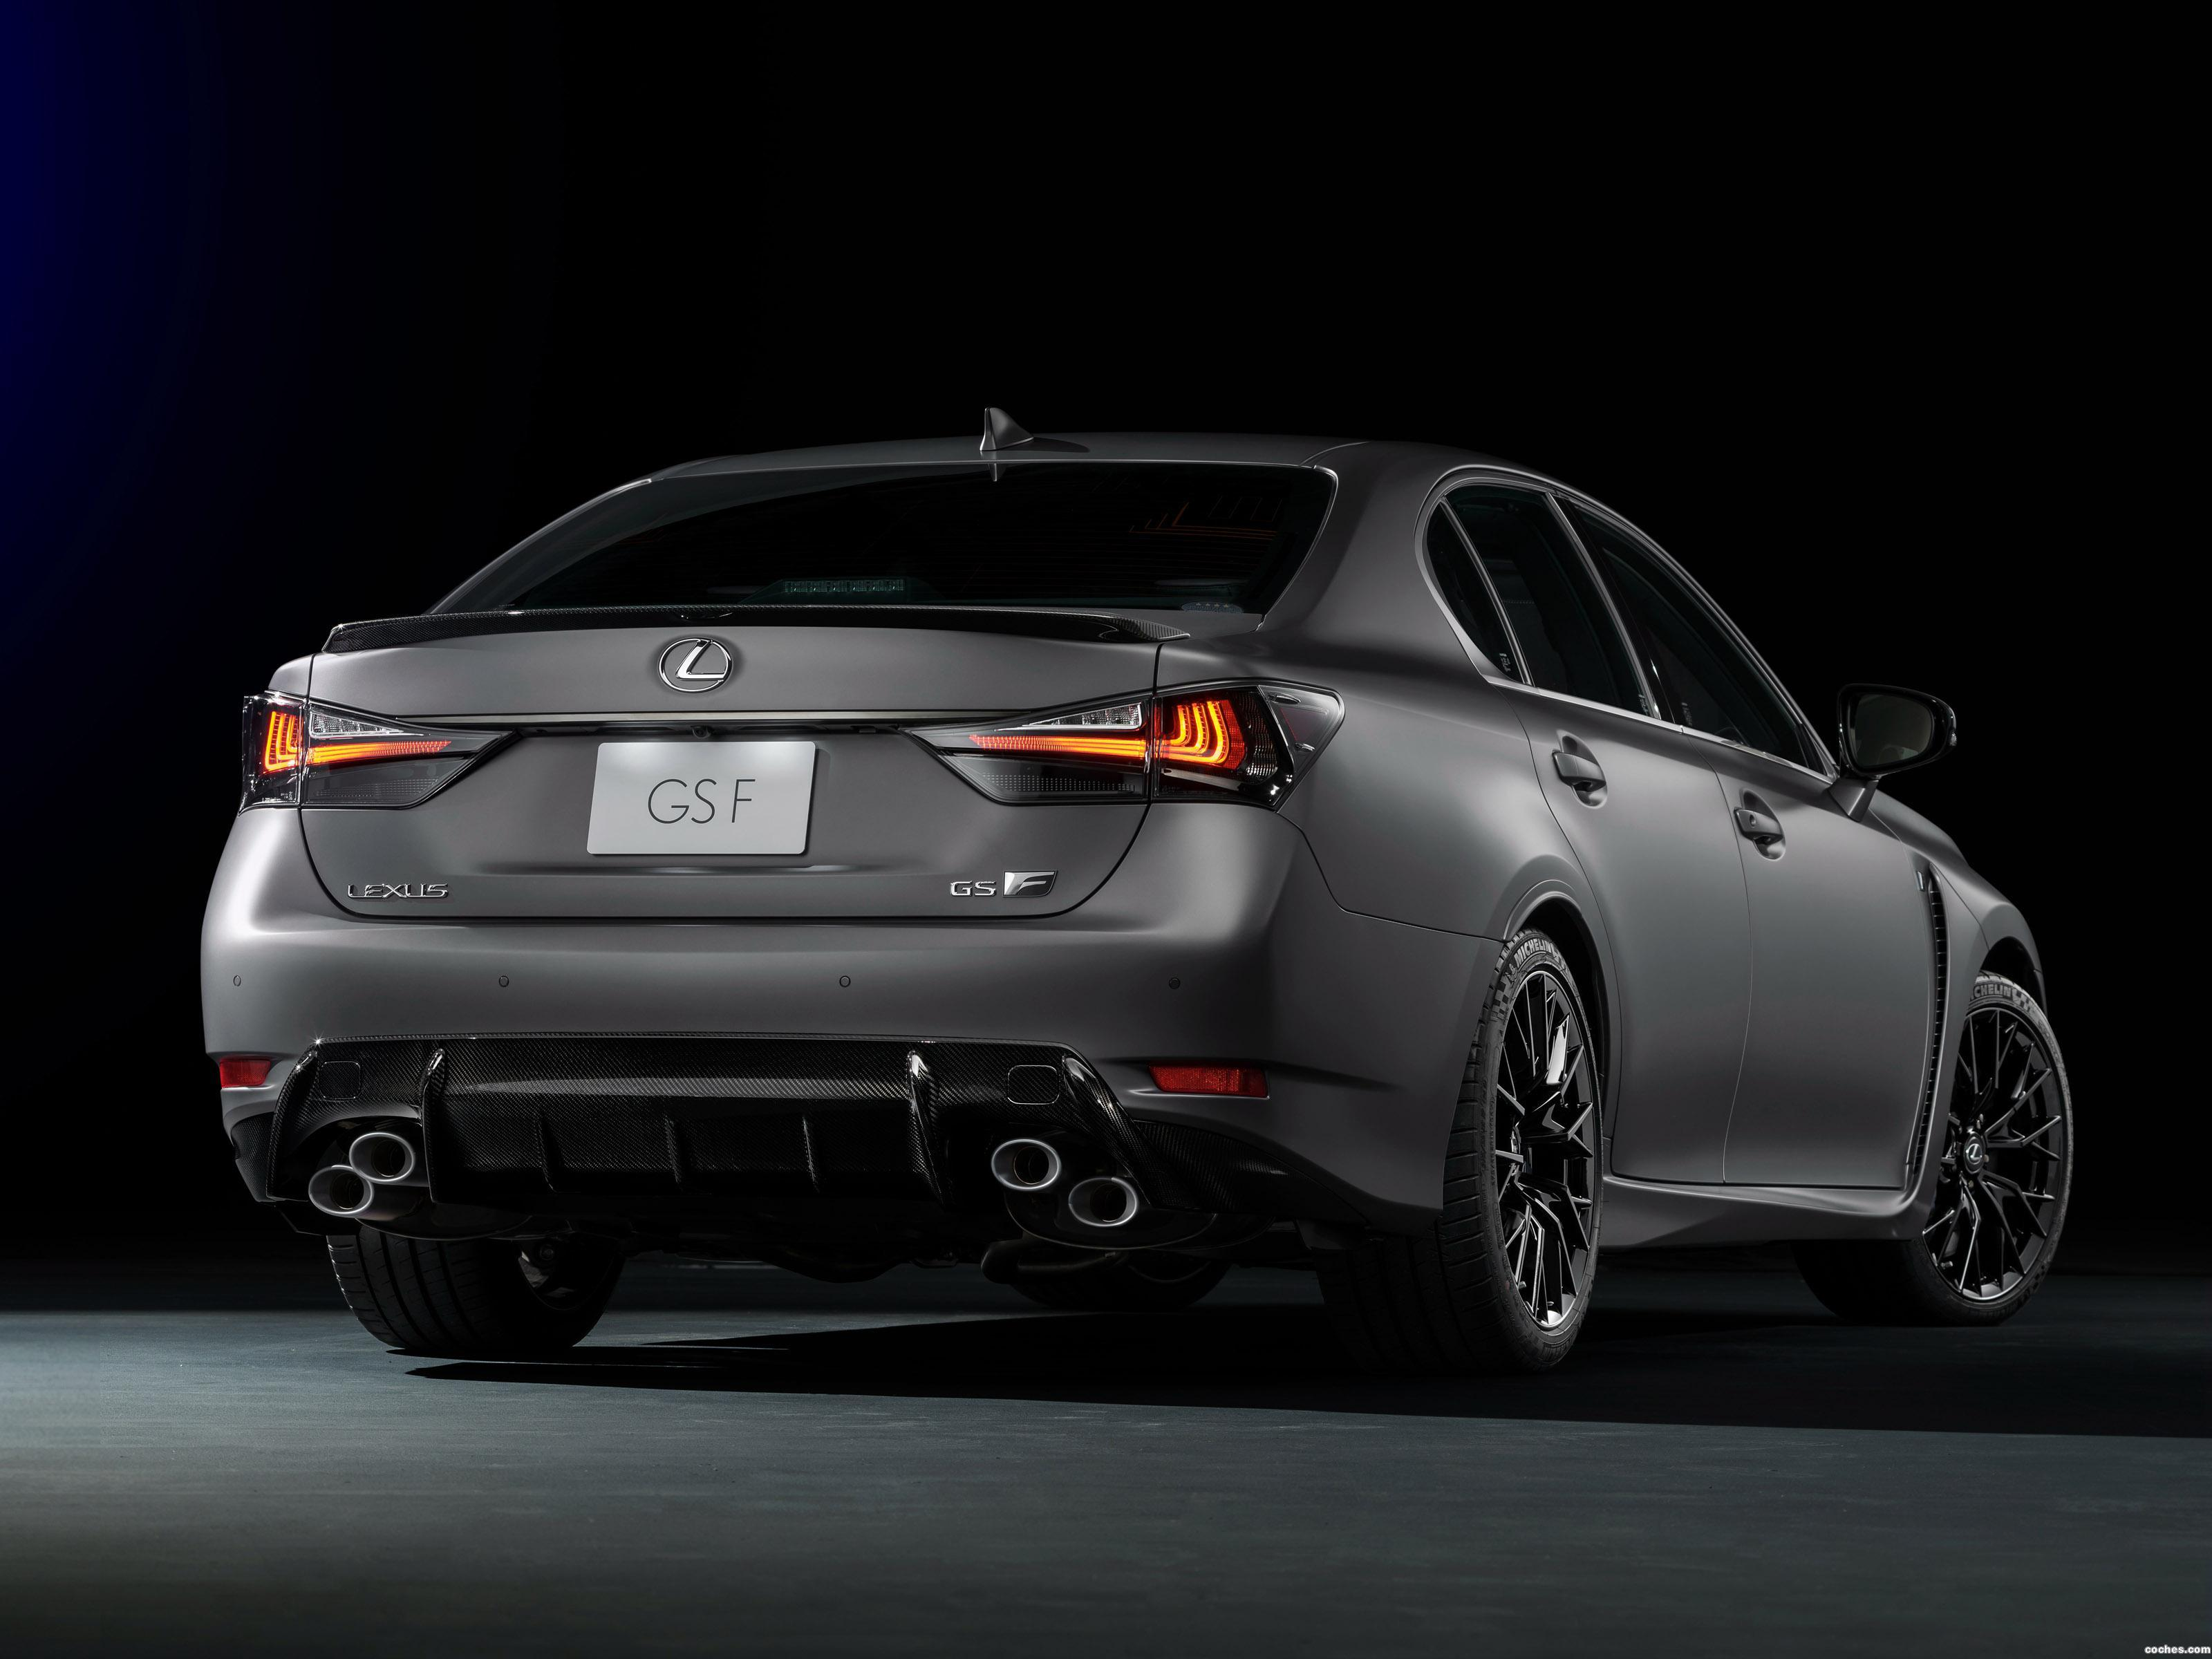 Foto 1 de Lexus GS F 10th Anniversary Limited 500 Japon 2018